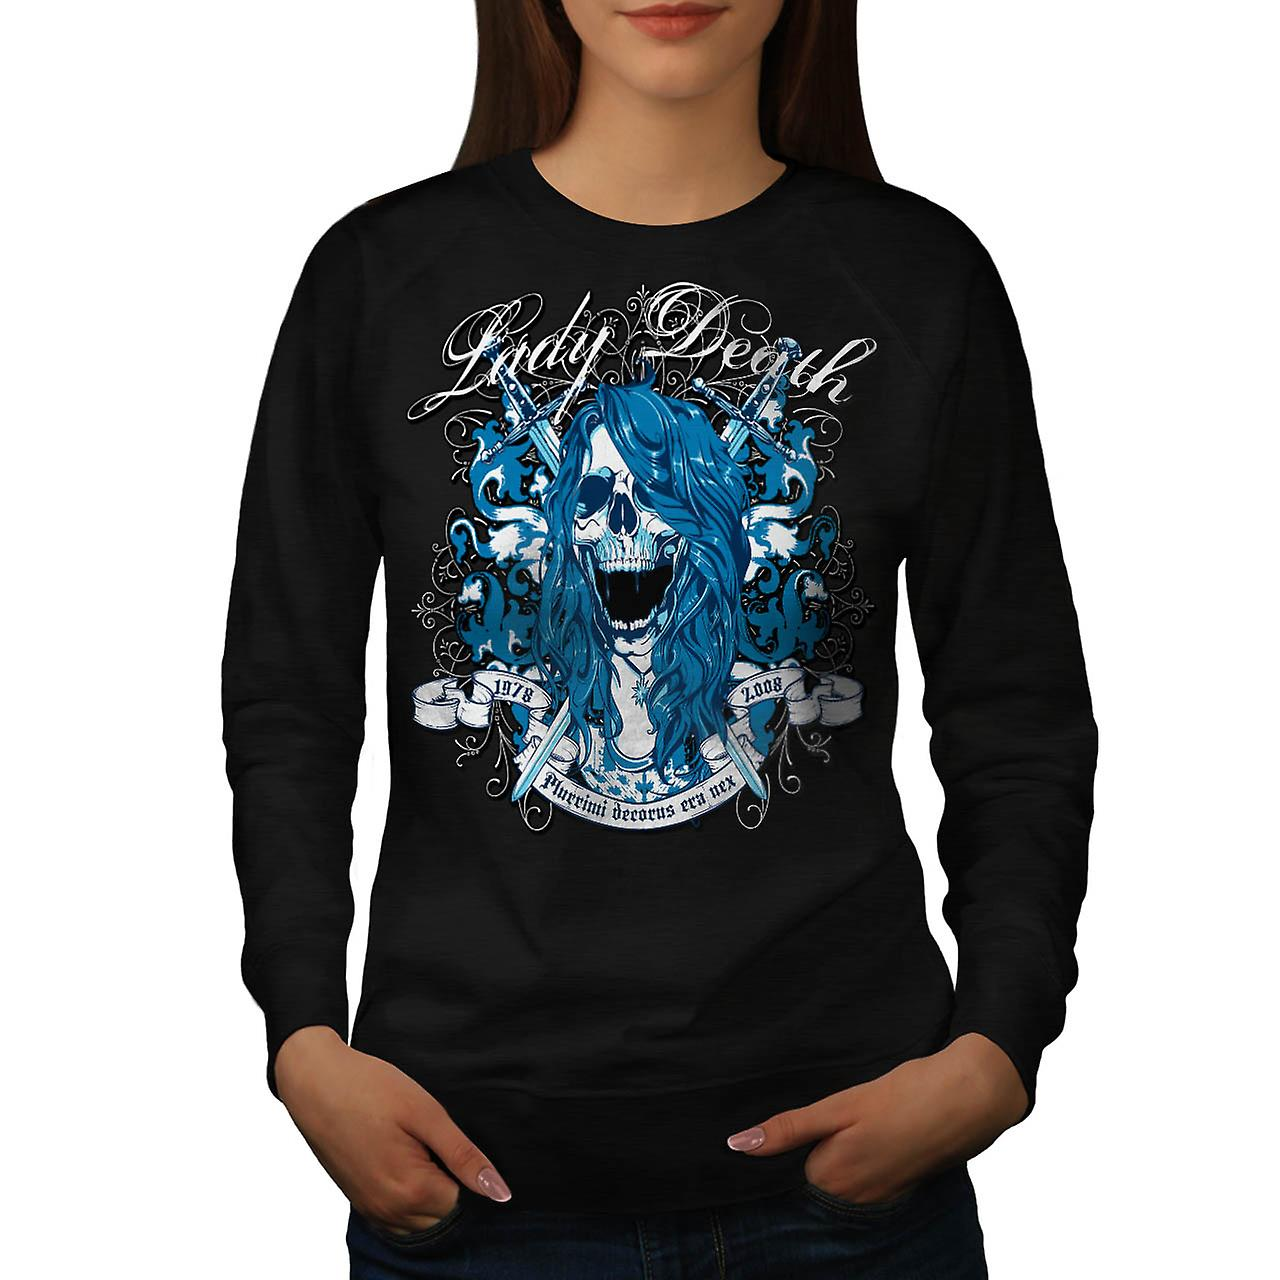 Lady Death Monster Horror Ghost Frauen Schwarzes Sweatshirt | Wellcoda